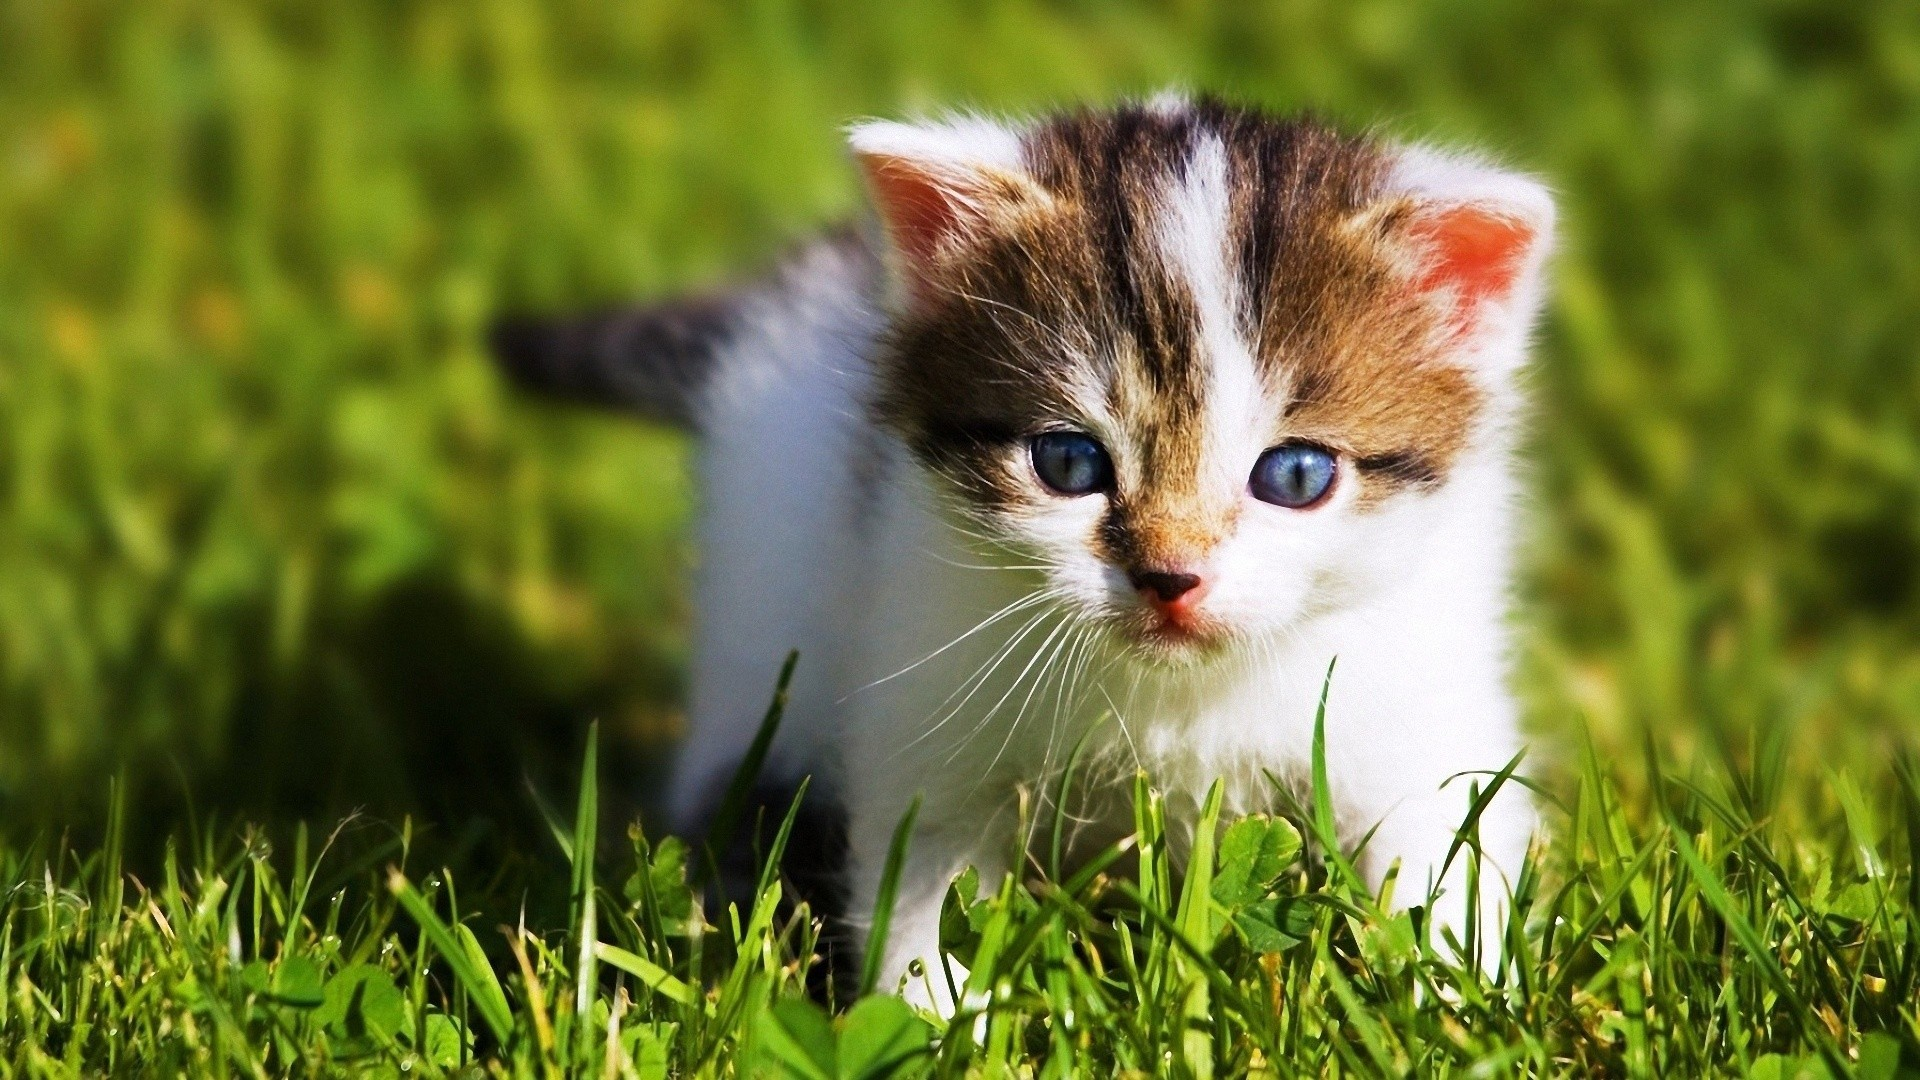 11 Cute Baby Animals That Will Get Rid Of Your Stress - Beautiful Animal Wallpaper Hd - HD Wallpaper